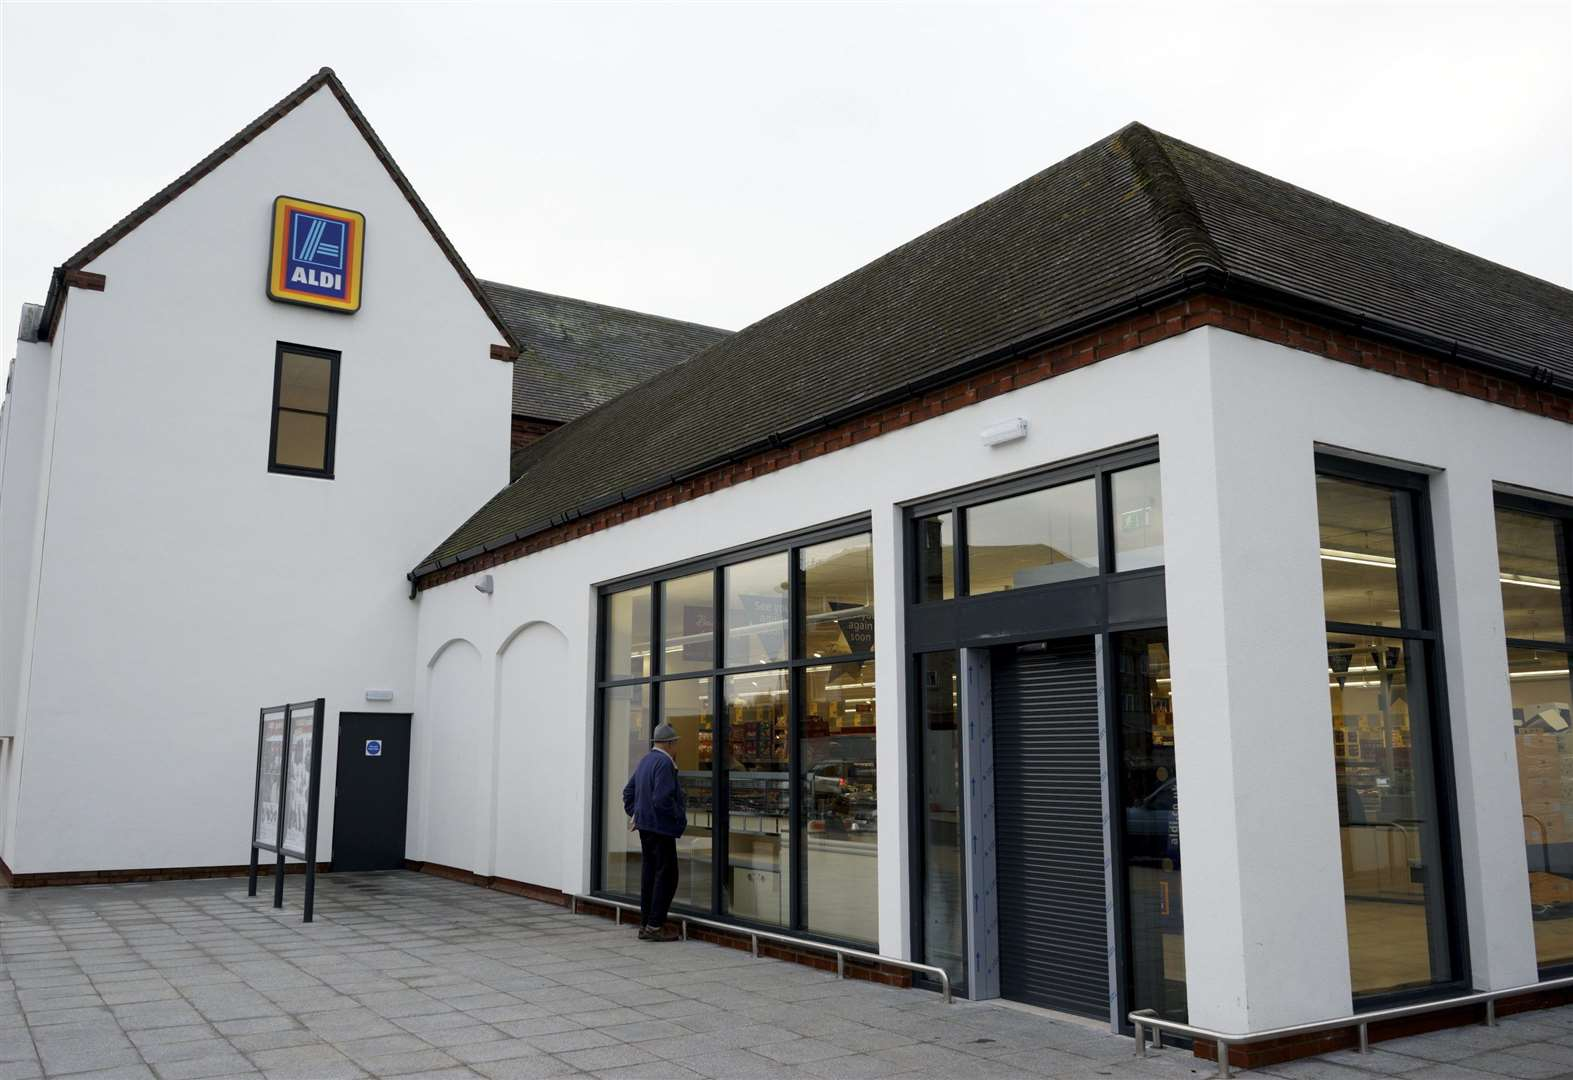 Aldi launches packaging-free trial in Diss